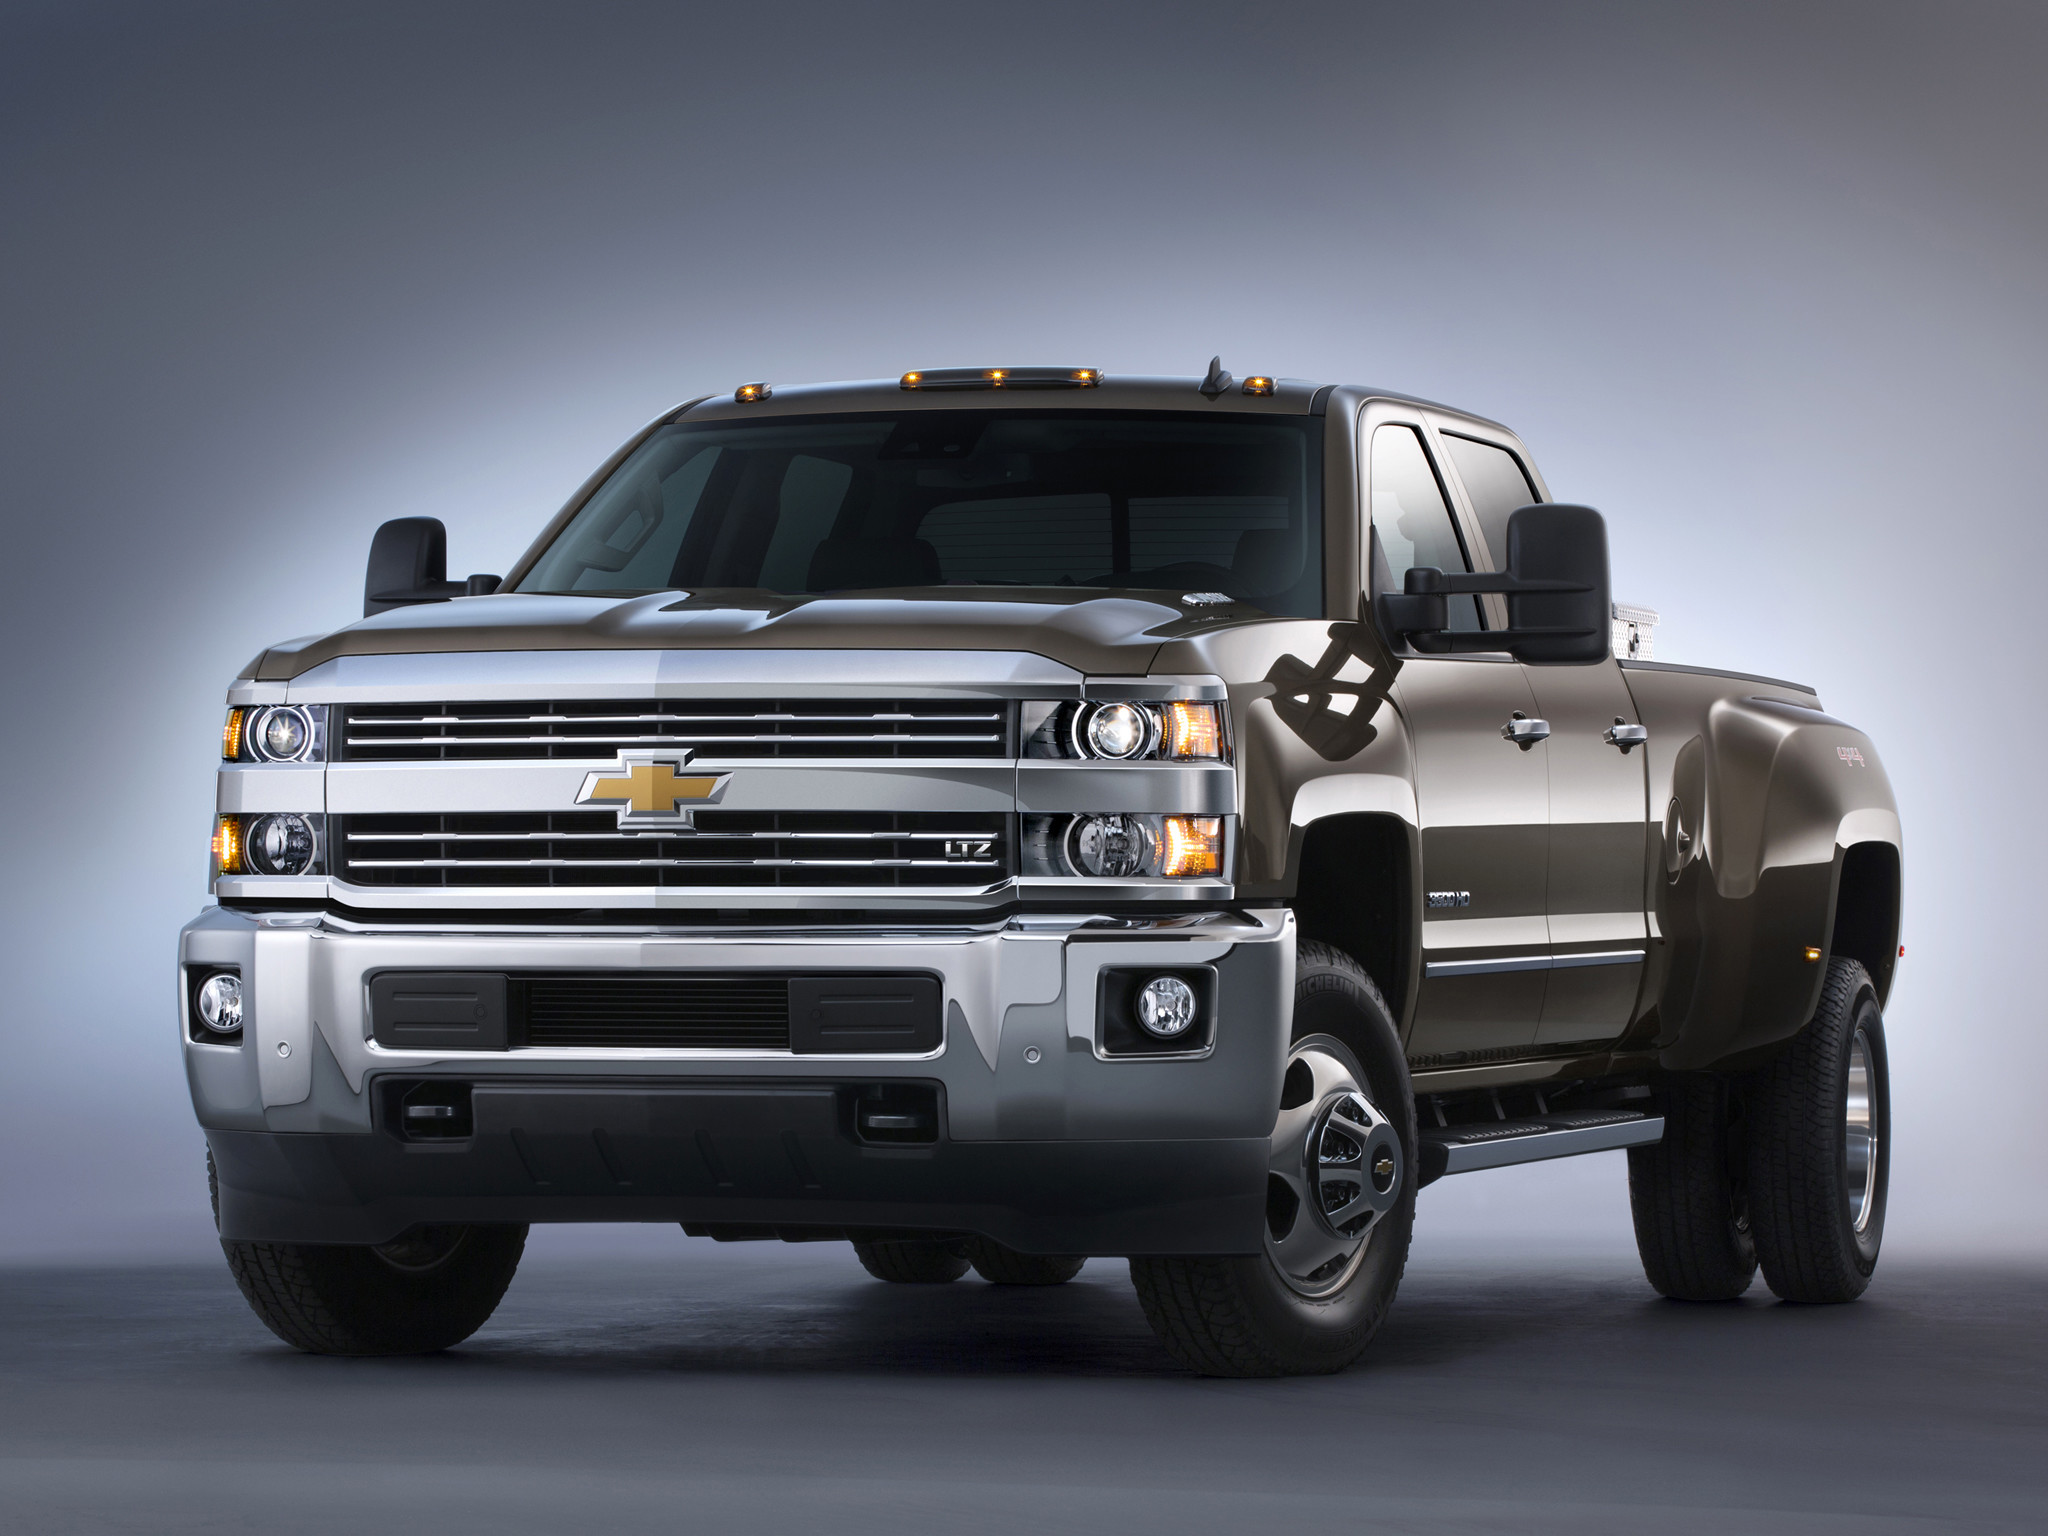 2048x1536 2014 chevrolet silverado 2500 h d ltz z71 crew cab pickup g wallpaper |  CHEVROLET PICKUPS USA #1. | Pinterest | Chevrolet silverado 2500, Silverado  2500 and ...